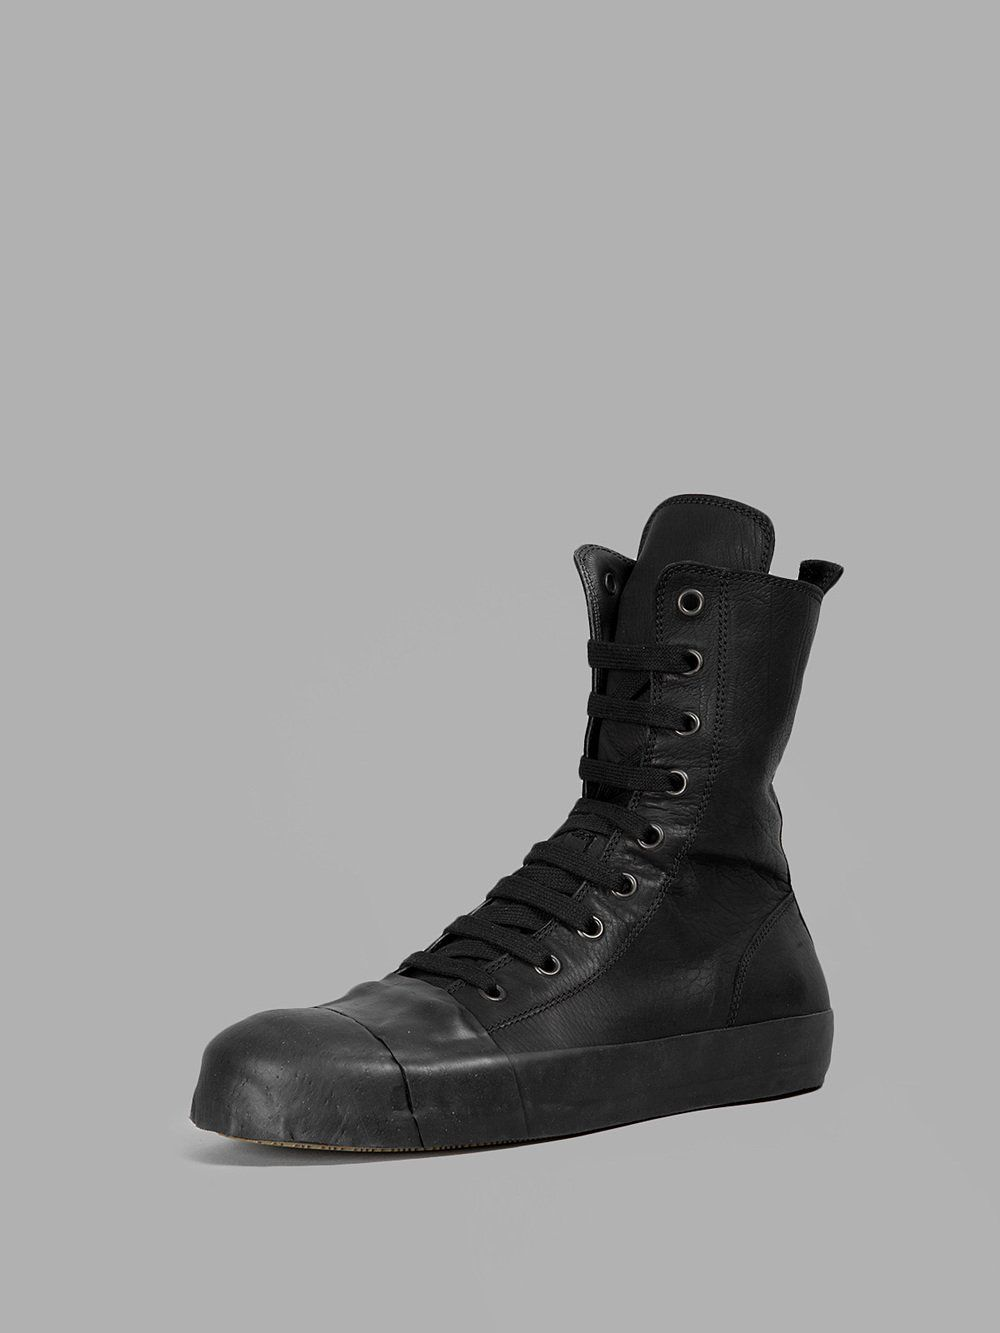 Ajax-loader-infinite-scrolling | Shoes | Pinterest | Black high tops, Ann  demeulemeester and Leather sneakers